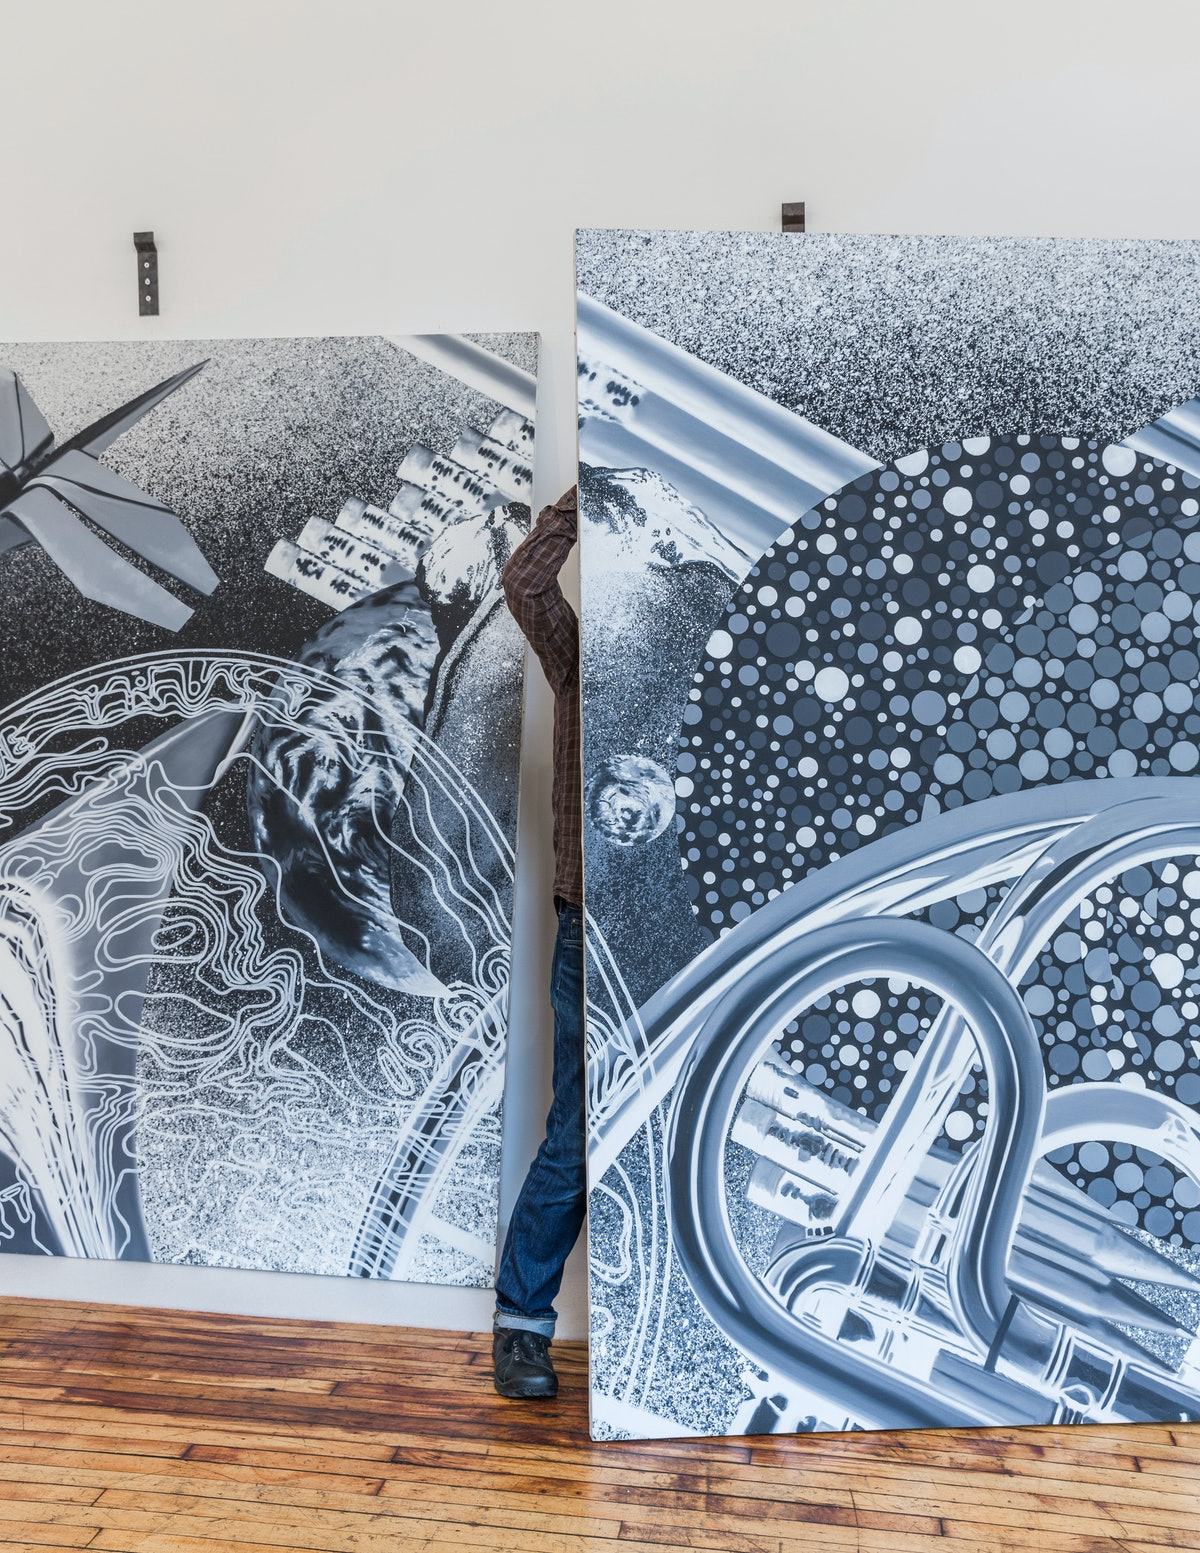 James Rosenquist Exhibition at the Judd Foundation.